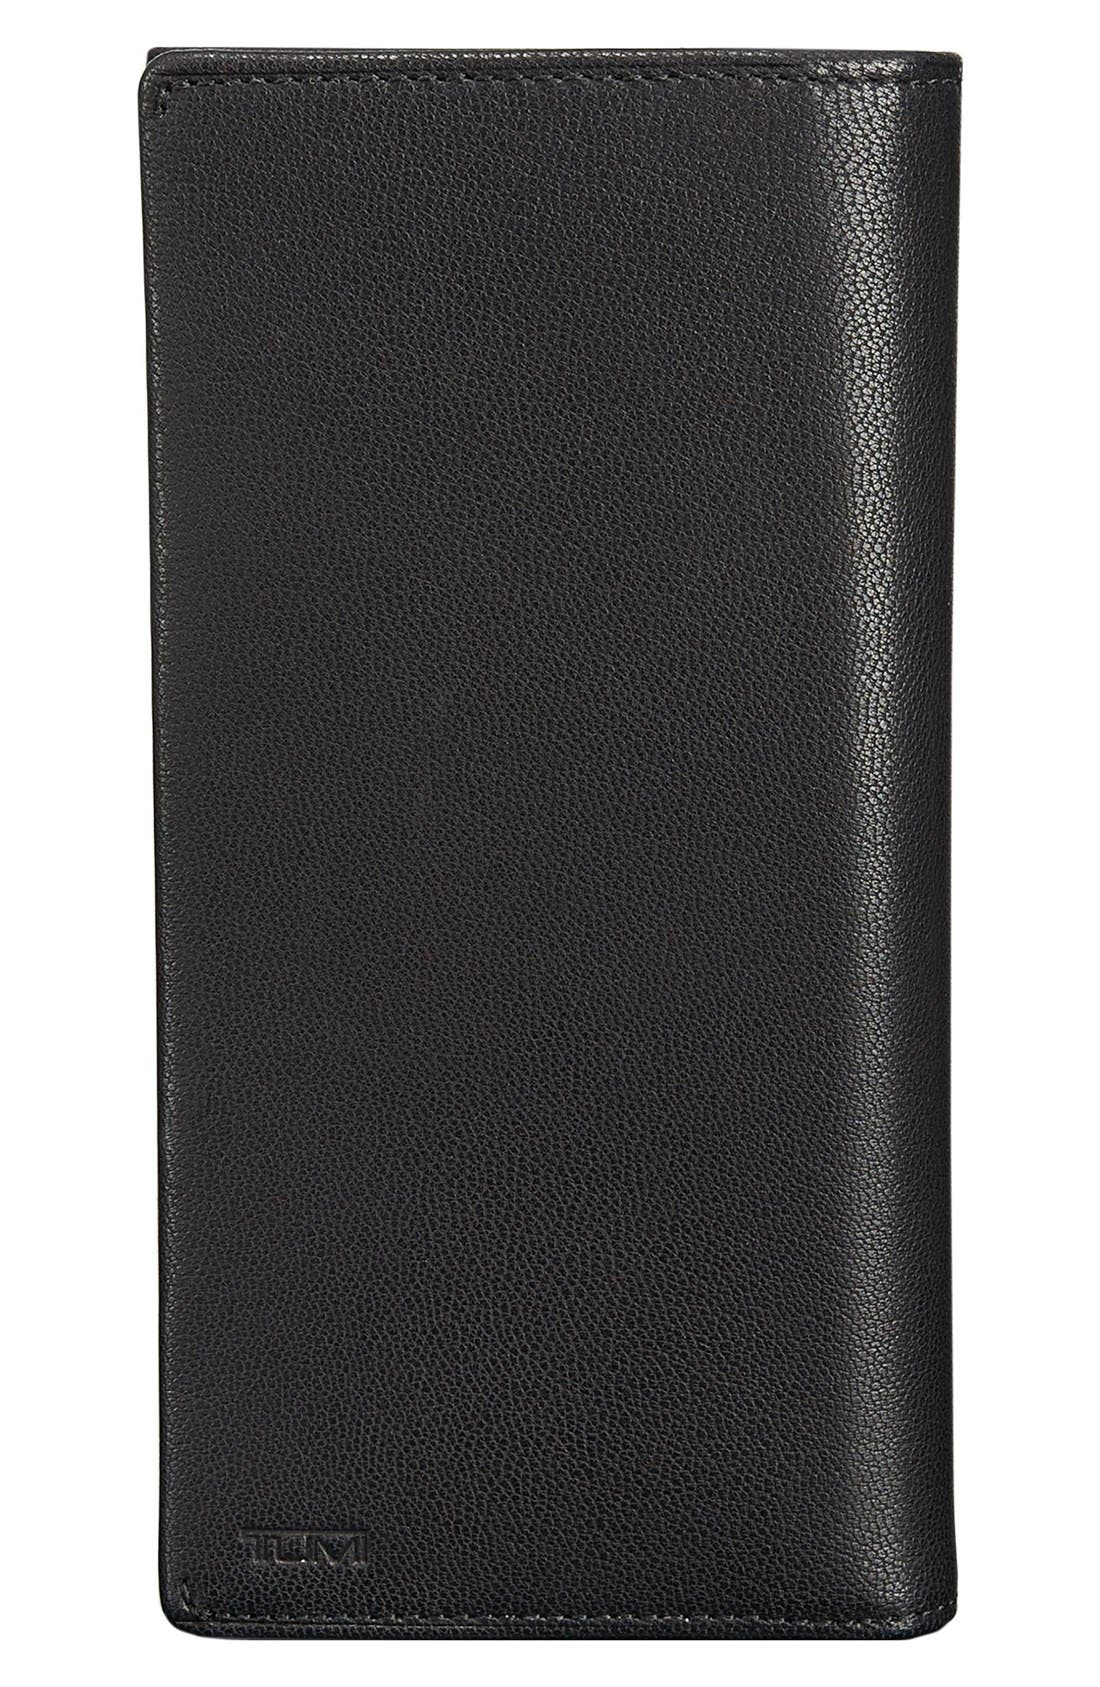 TUMI,                             'Chambers' Leather Breast Pocket Wallet,                             Main thumbnail 1, color,                             001